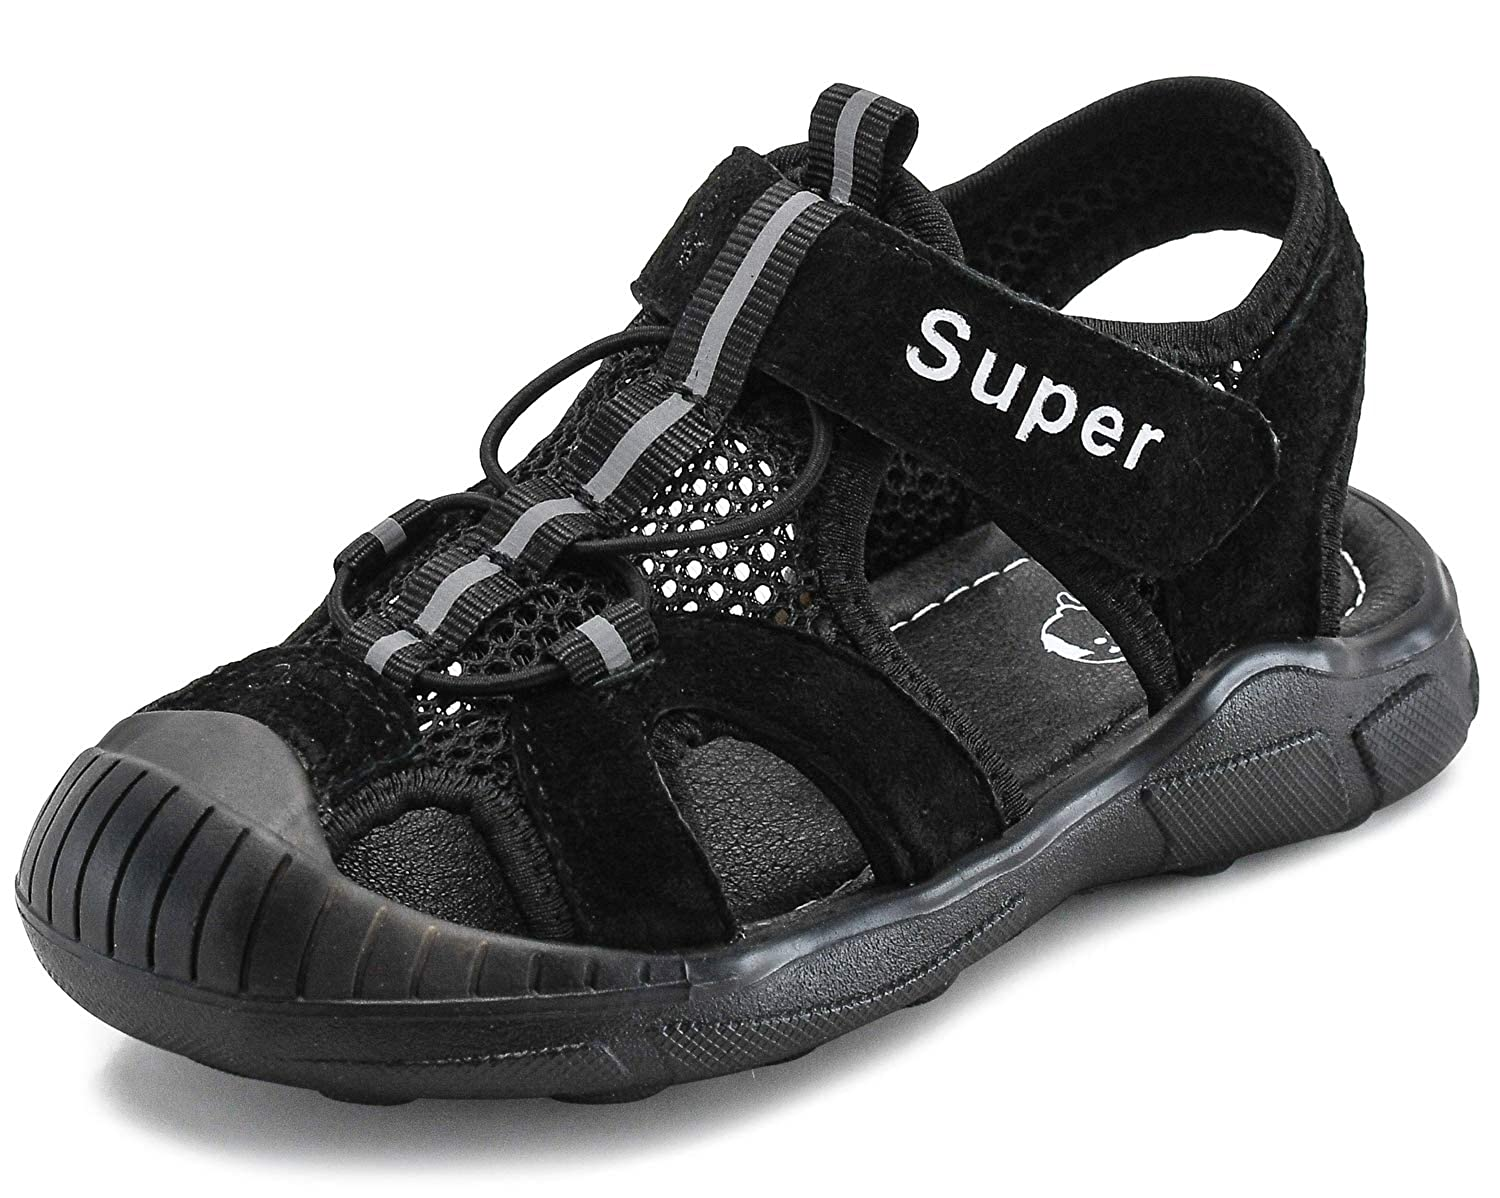 SKOEX Baby Boys Closed-Toe Water Outdoor Sports Sandals Toddler//Little Kid